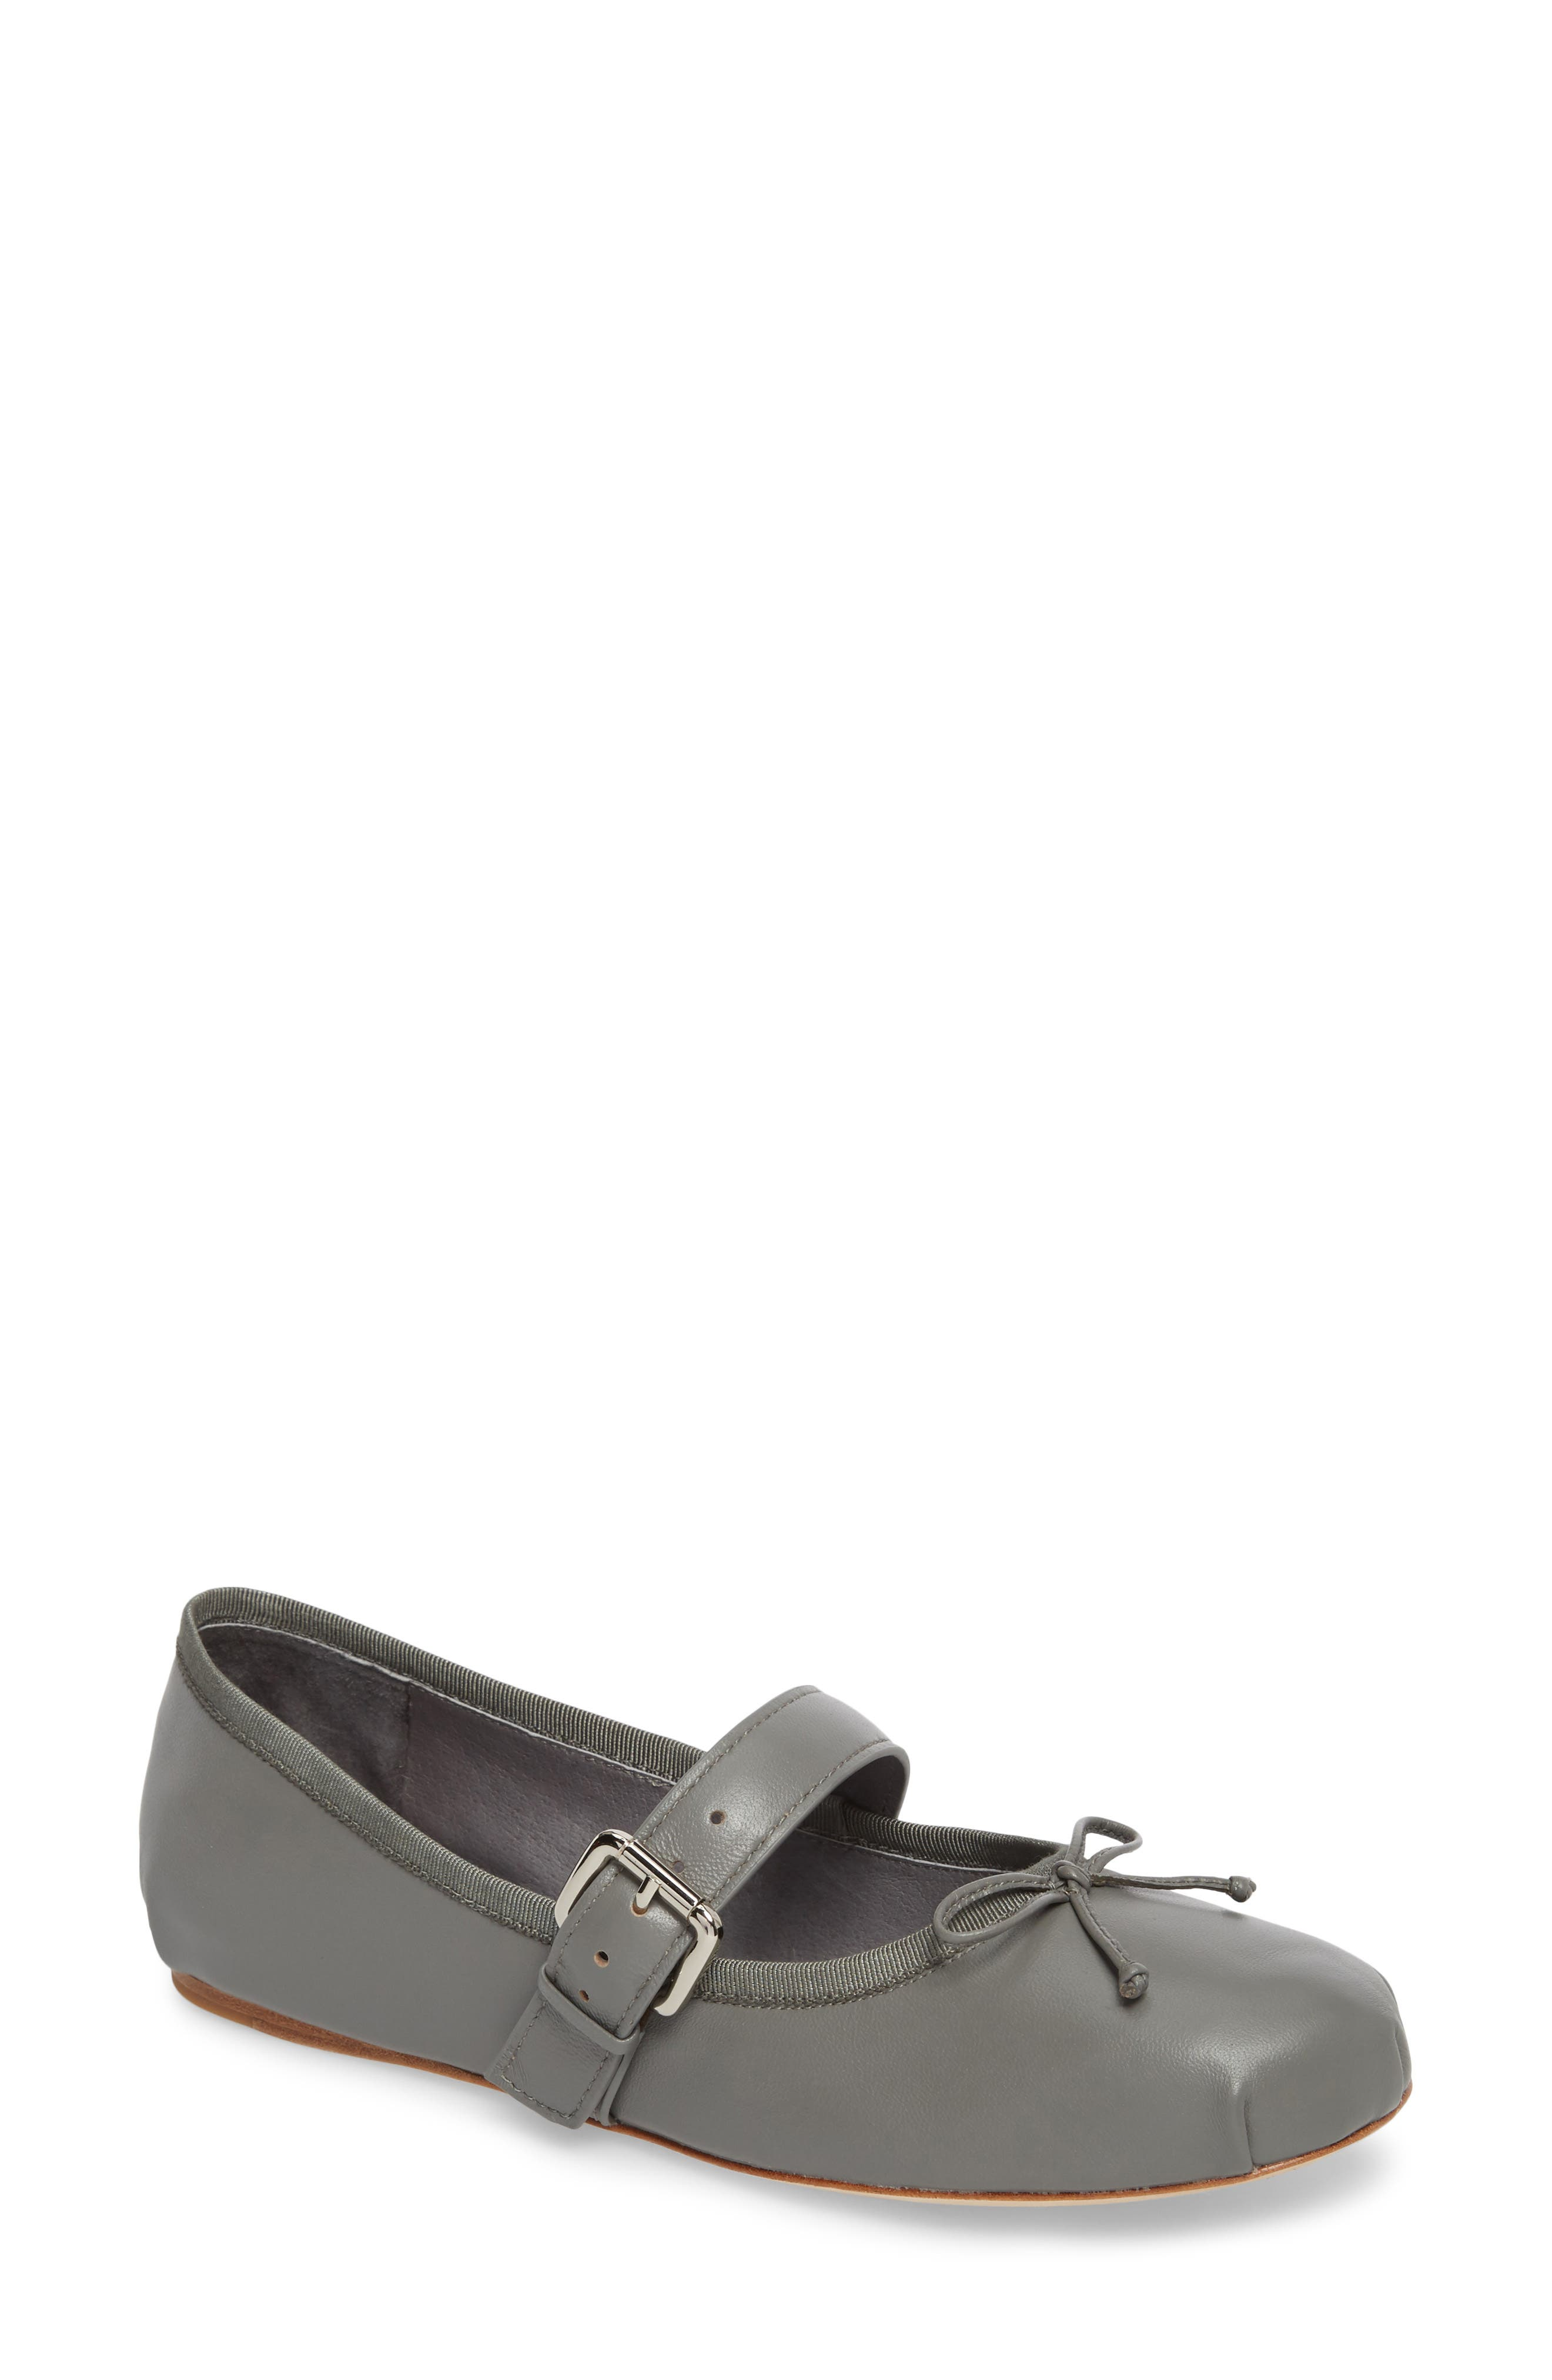 Molly Mary Jane Flat,                         Main,                         color, GREY LEATHER